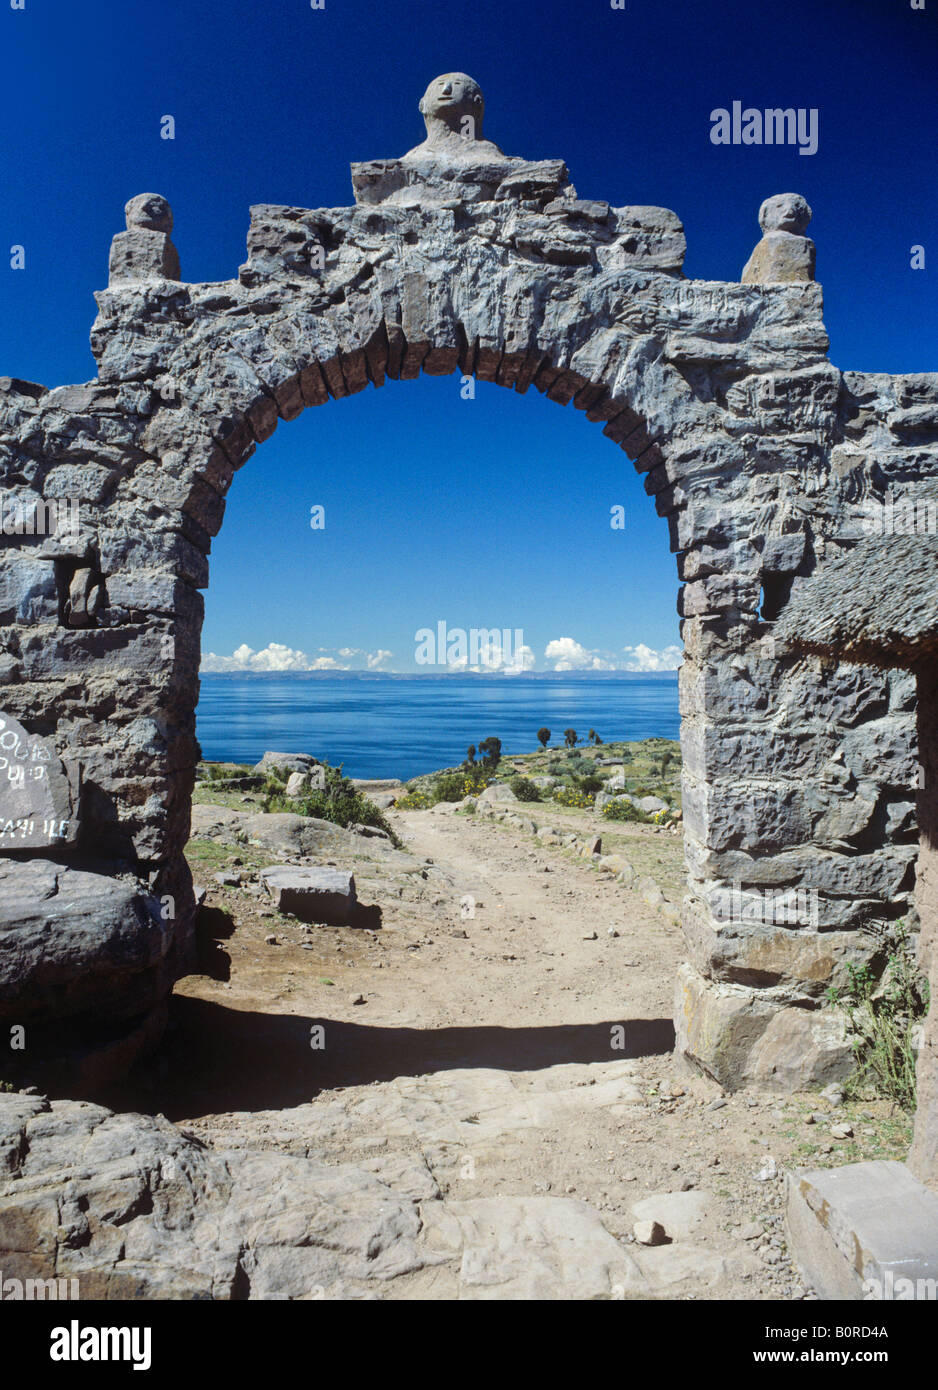 view from stone arch gate to lake titicaca island of taquile peru - Stock Image